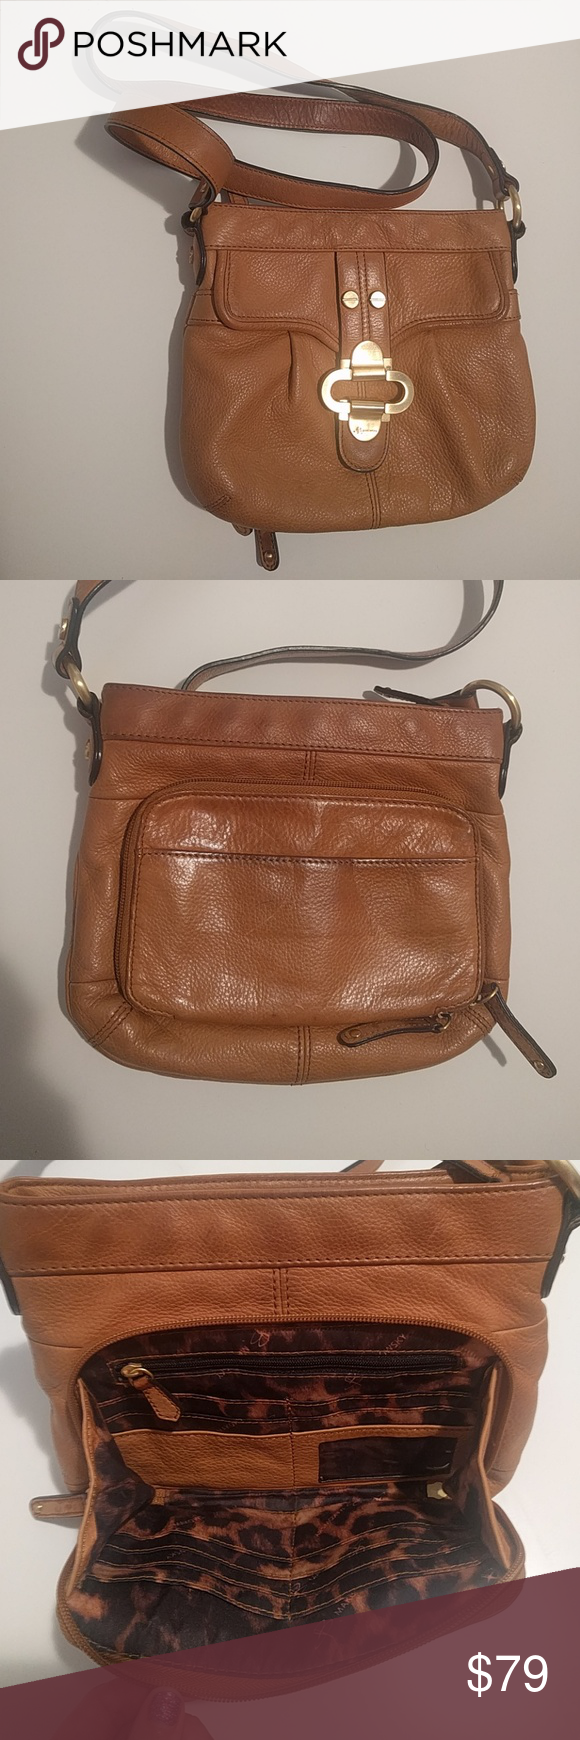 B. Makowsky crossbody bag Tan leather purse with built-in wallet in back. Some of the leather is darkened from use, but there are no tears. b. makowsky Bags Crossbody Bags